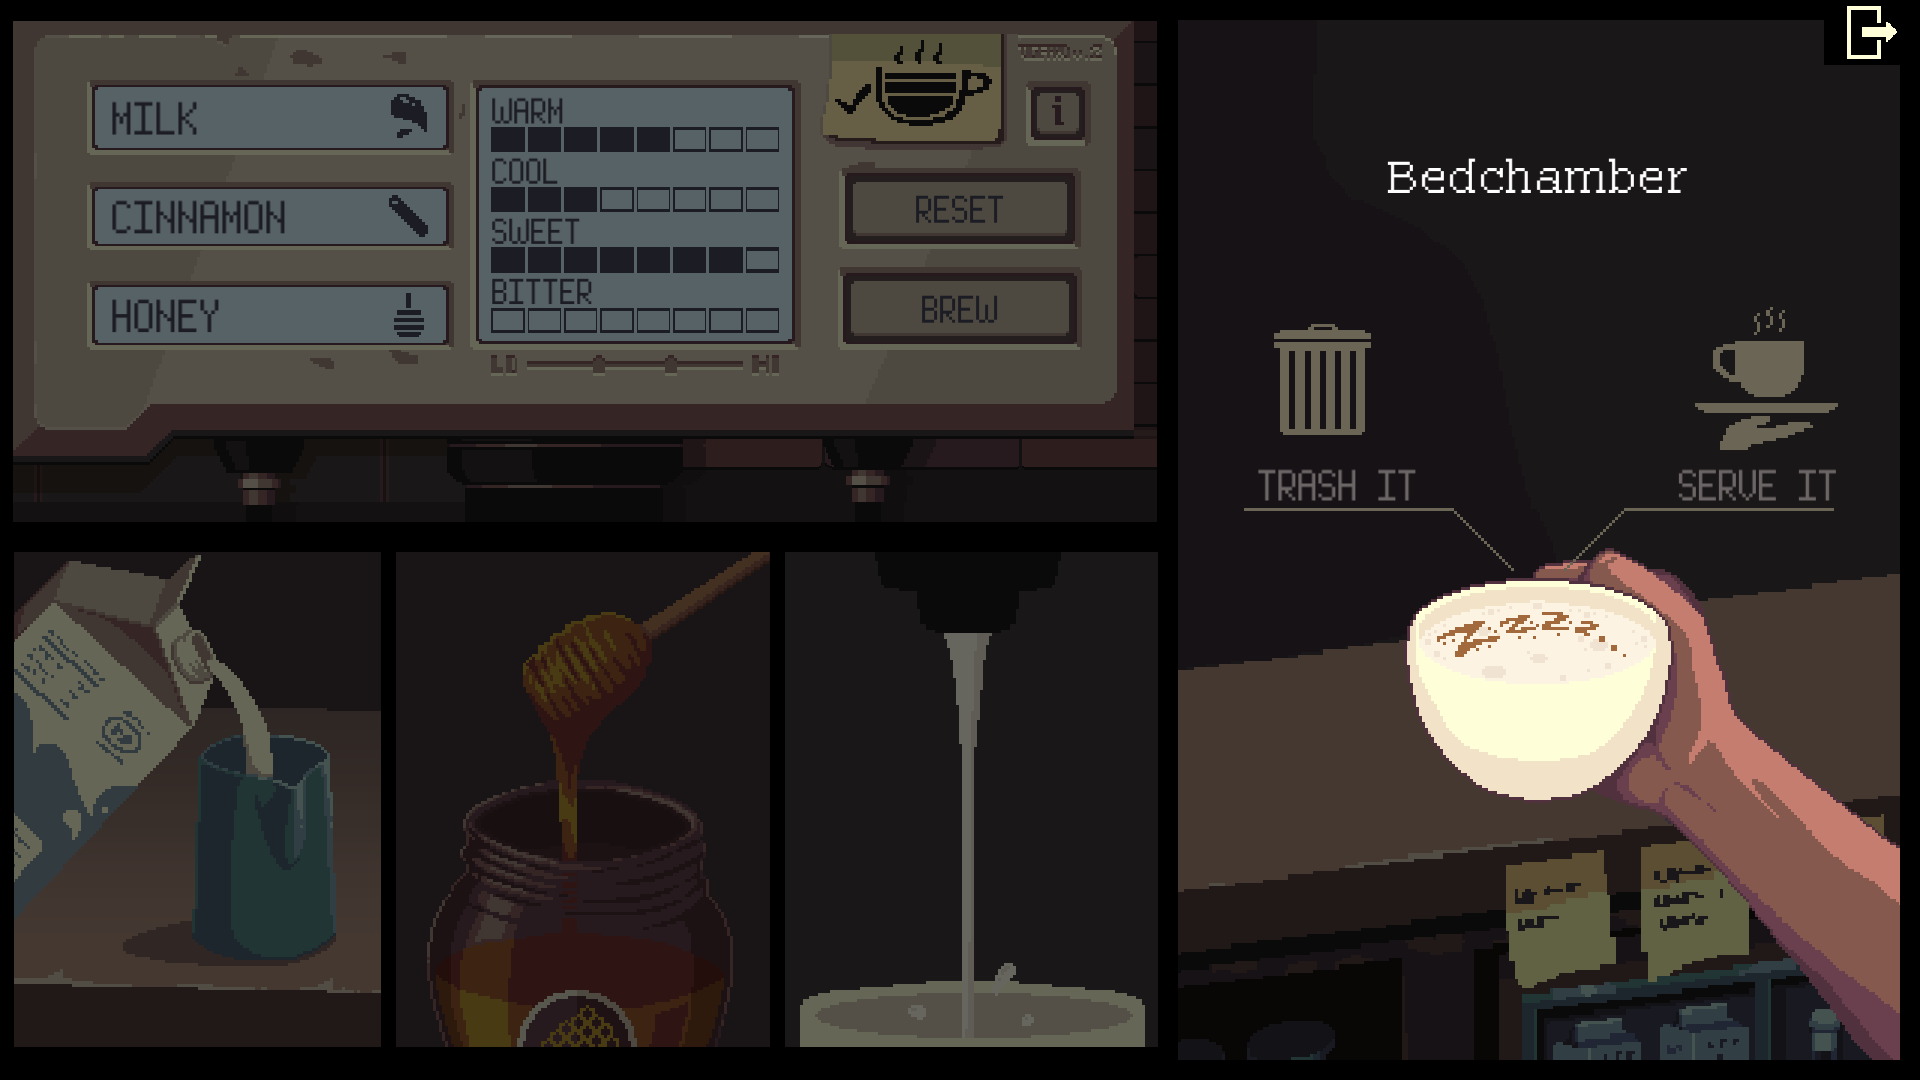 Bedchamber recipe is milk, cinnamon and honey on the Coffee Talk video game.